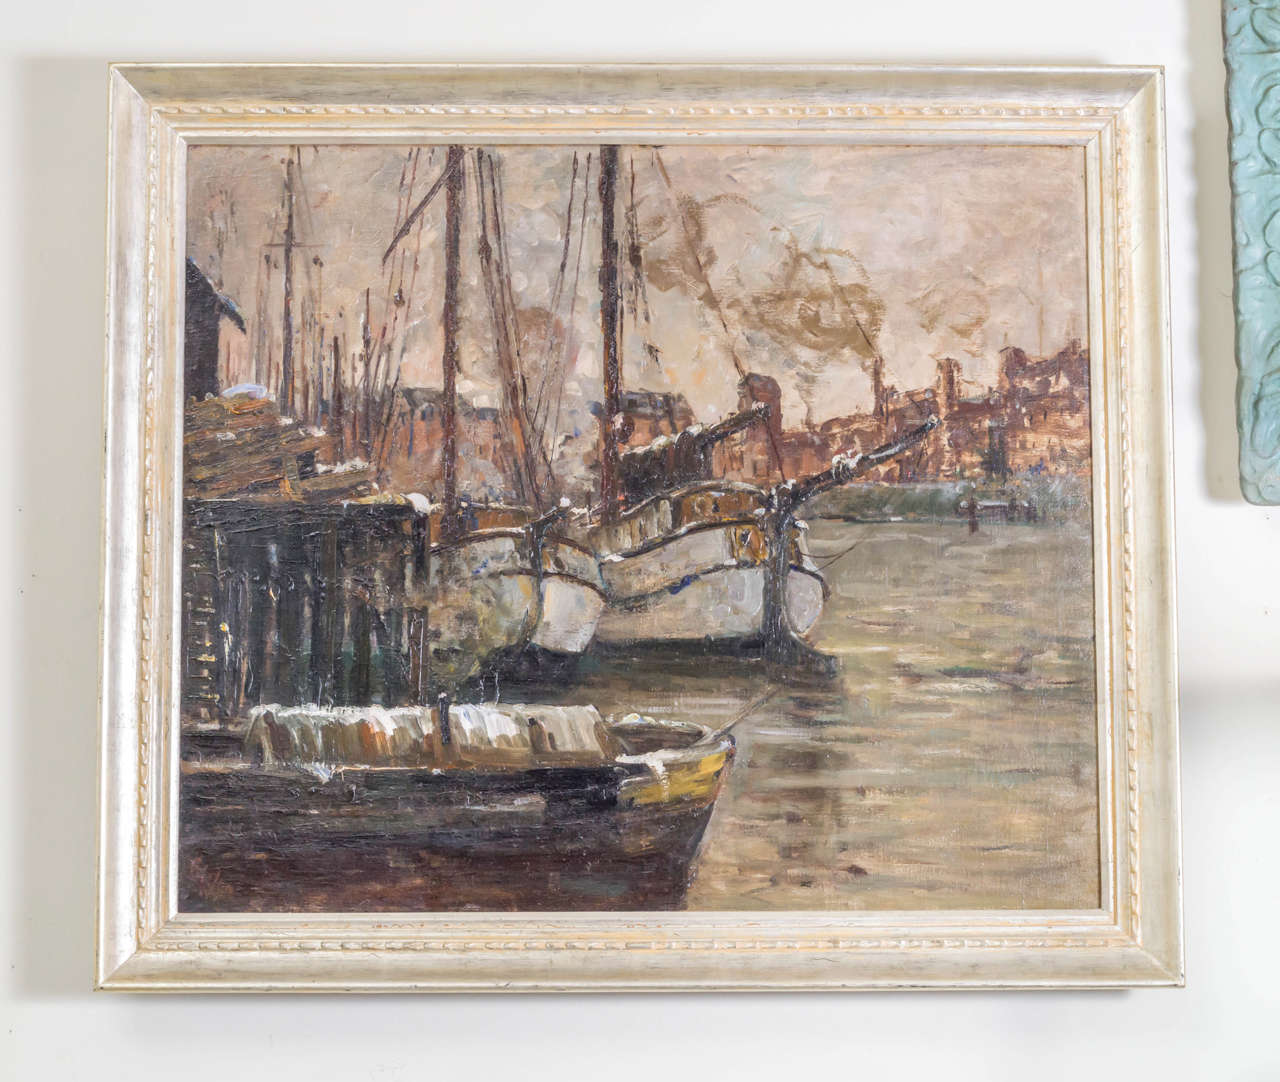 Oil on Canvas Painting of a Harbor Scene by German Artist Toni Magpie (Elster) 2